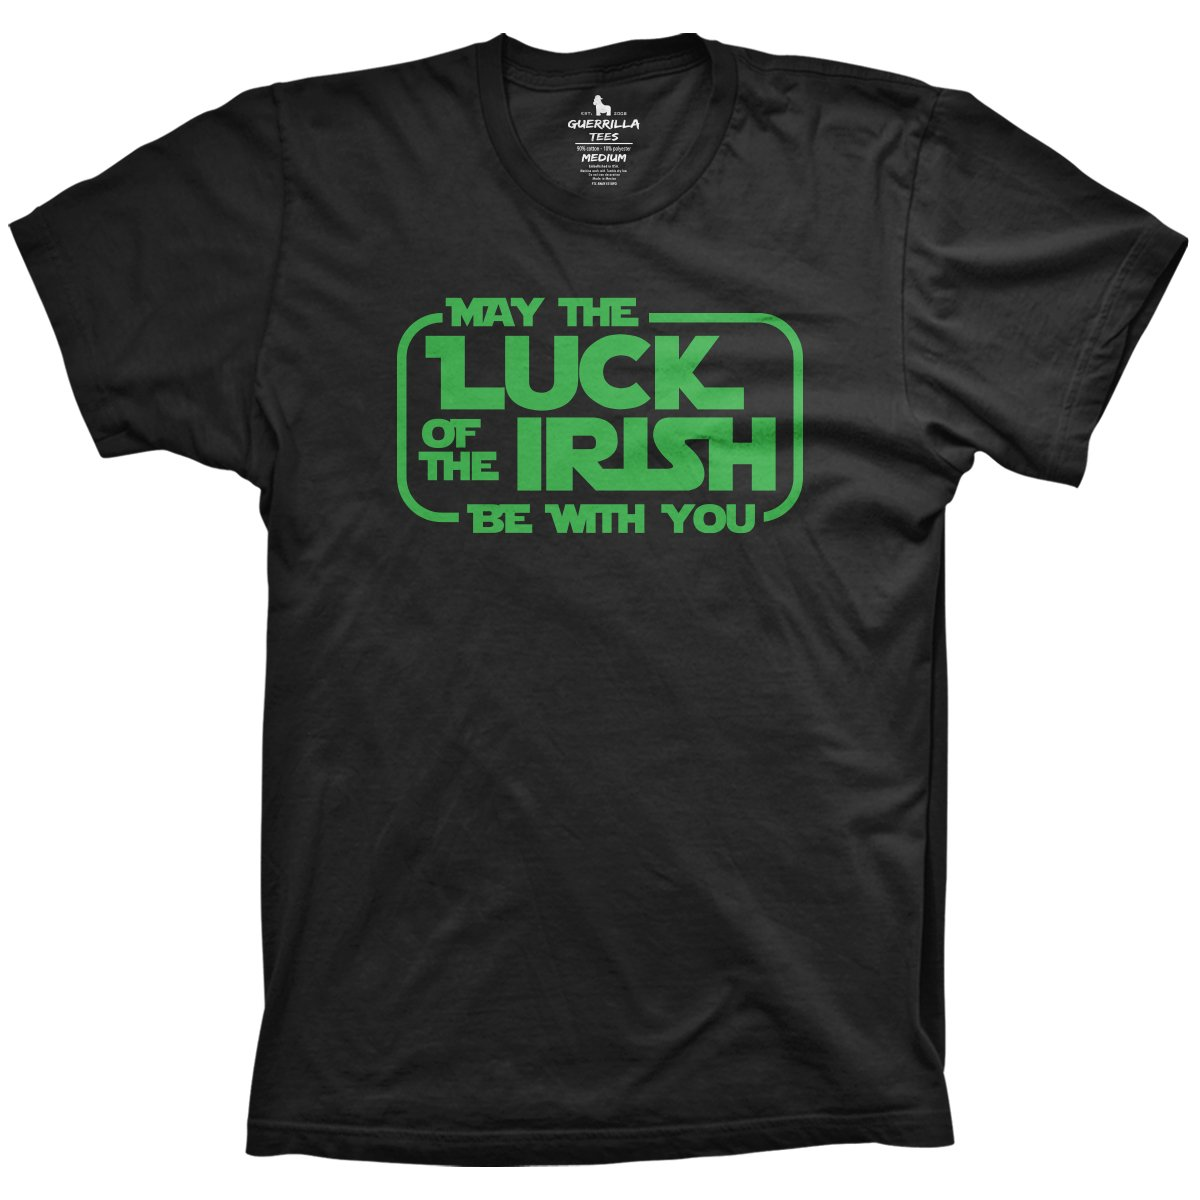 76bdfc1a3 Luck of the Irish | St Patrick's Day T-Shirts | Guerrilla Tees